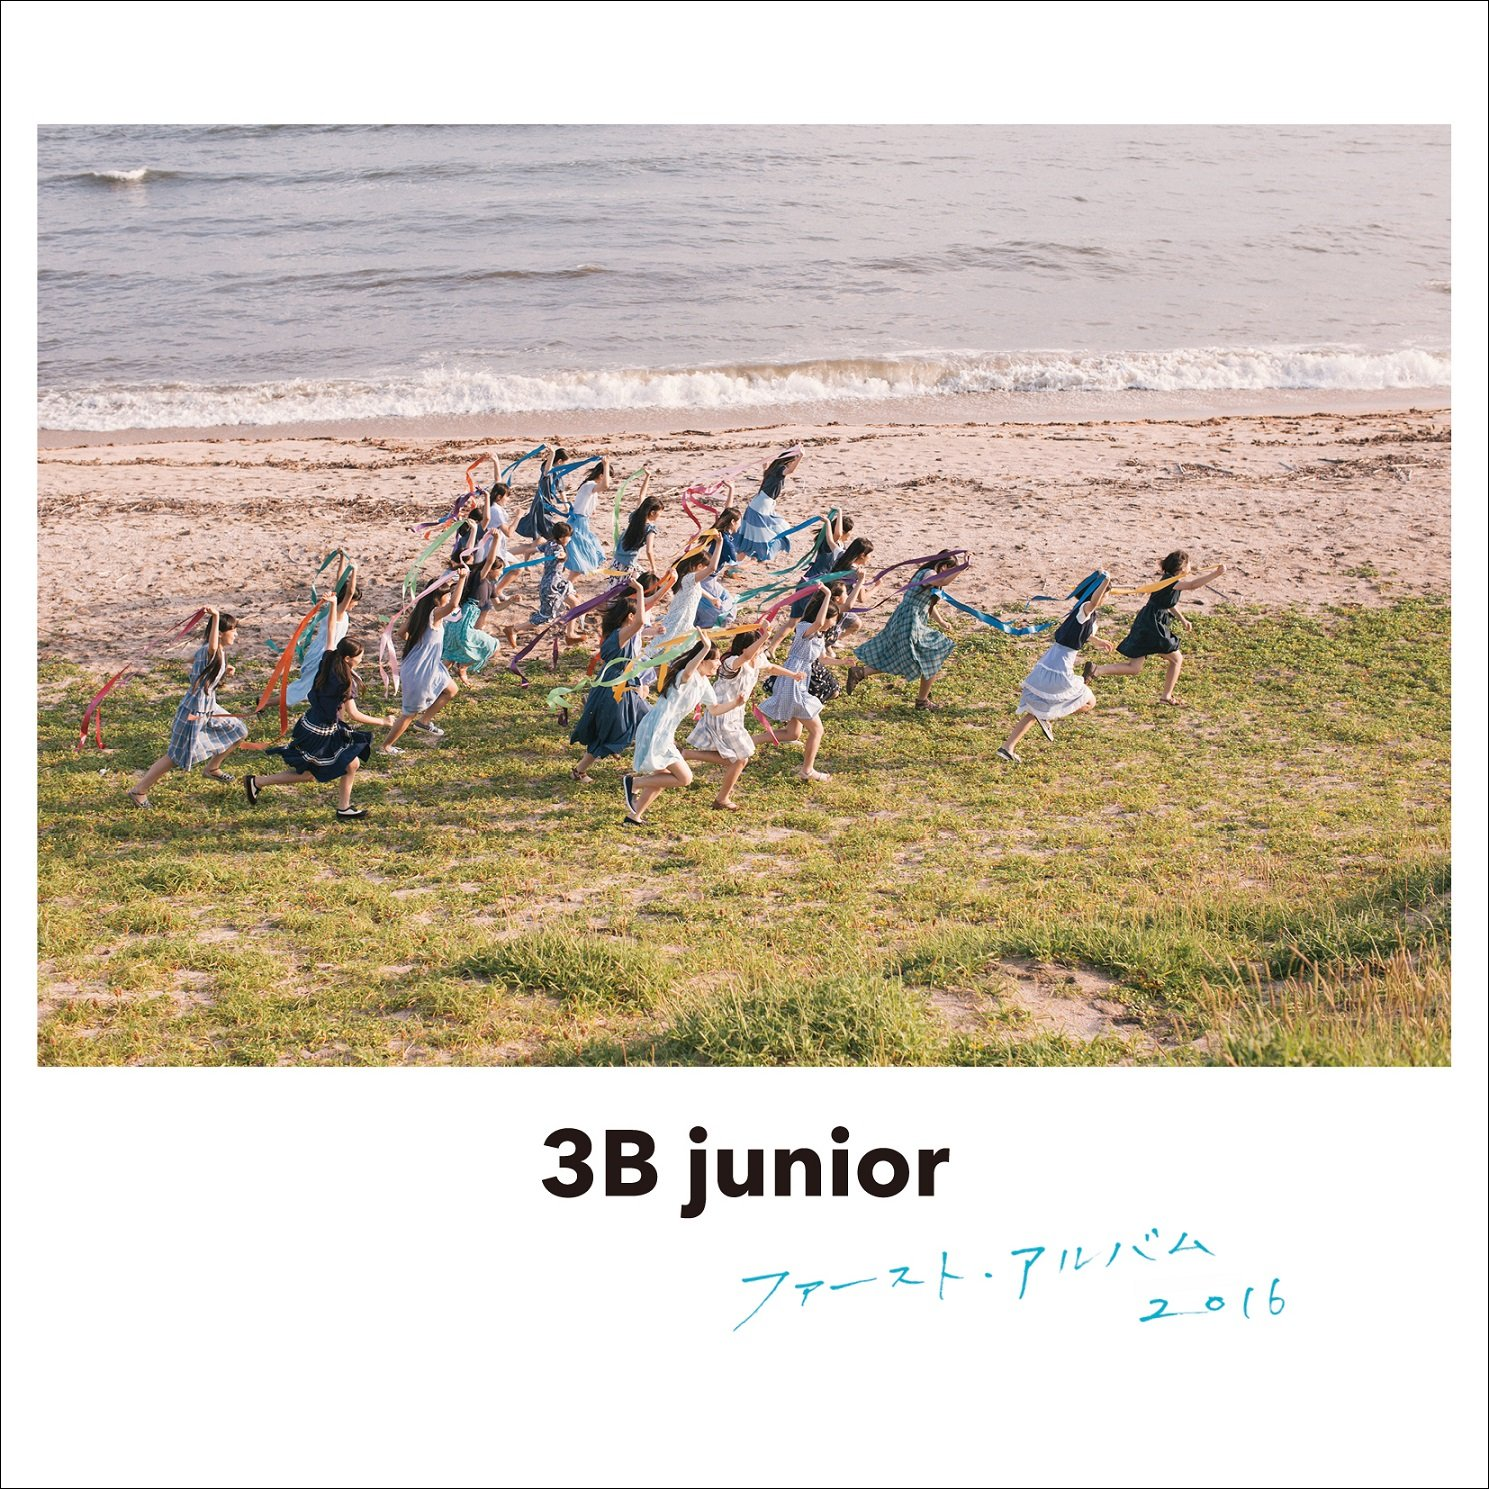 3B junior – 3B junior First Album (Limited Edition) 2016 Bluray ISO